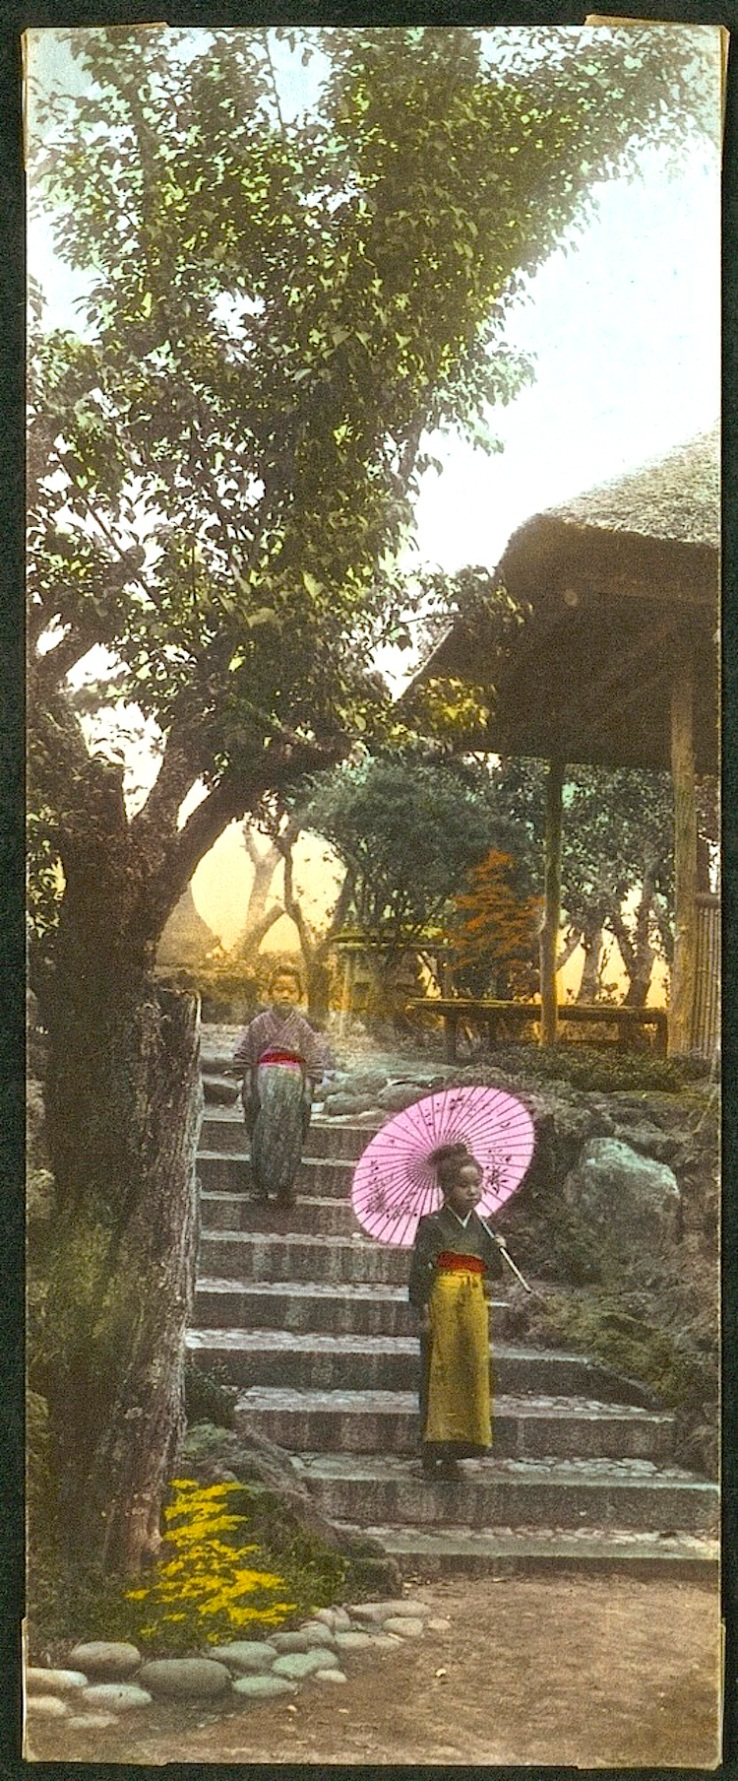 Steps in a Japanese garden, ca. 1900, Natl. Museum of Denmark